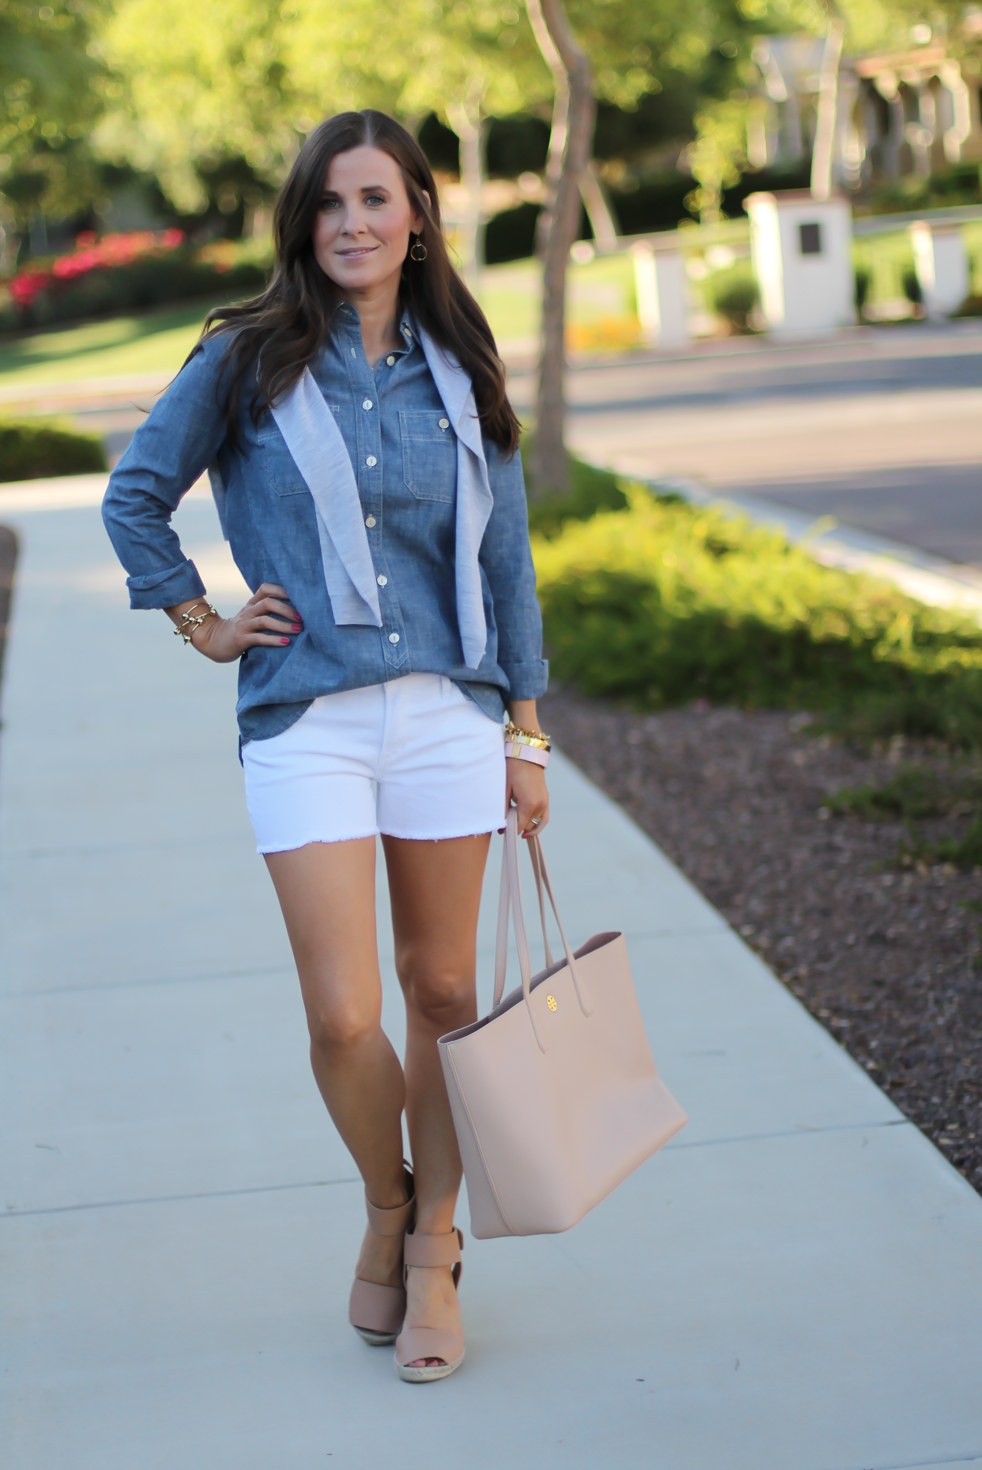 Chambray Shirt, White Cutoff Shorts, Beige Espadrille Wedges, Beige Tote, Grey Cashmere Cardigan, J.Crew, Citizens of Humanity, Vince, Tory Burch 6